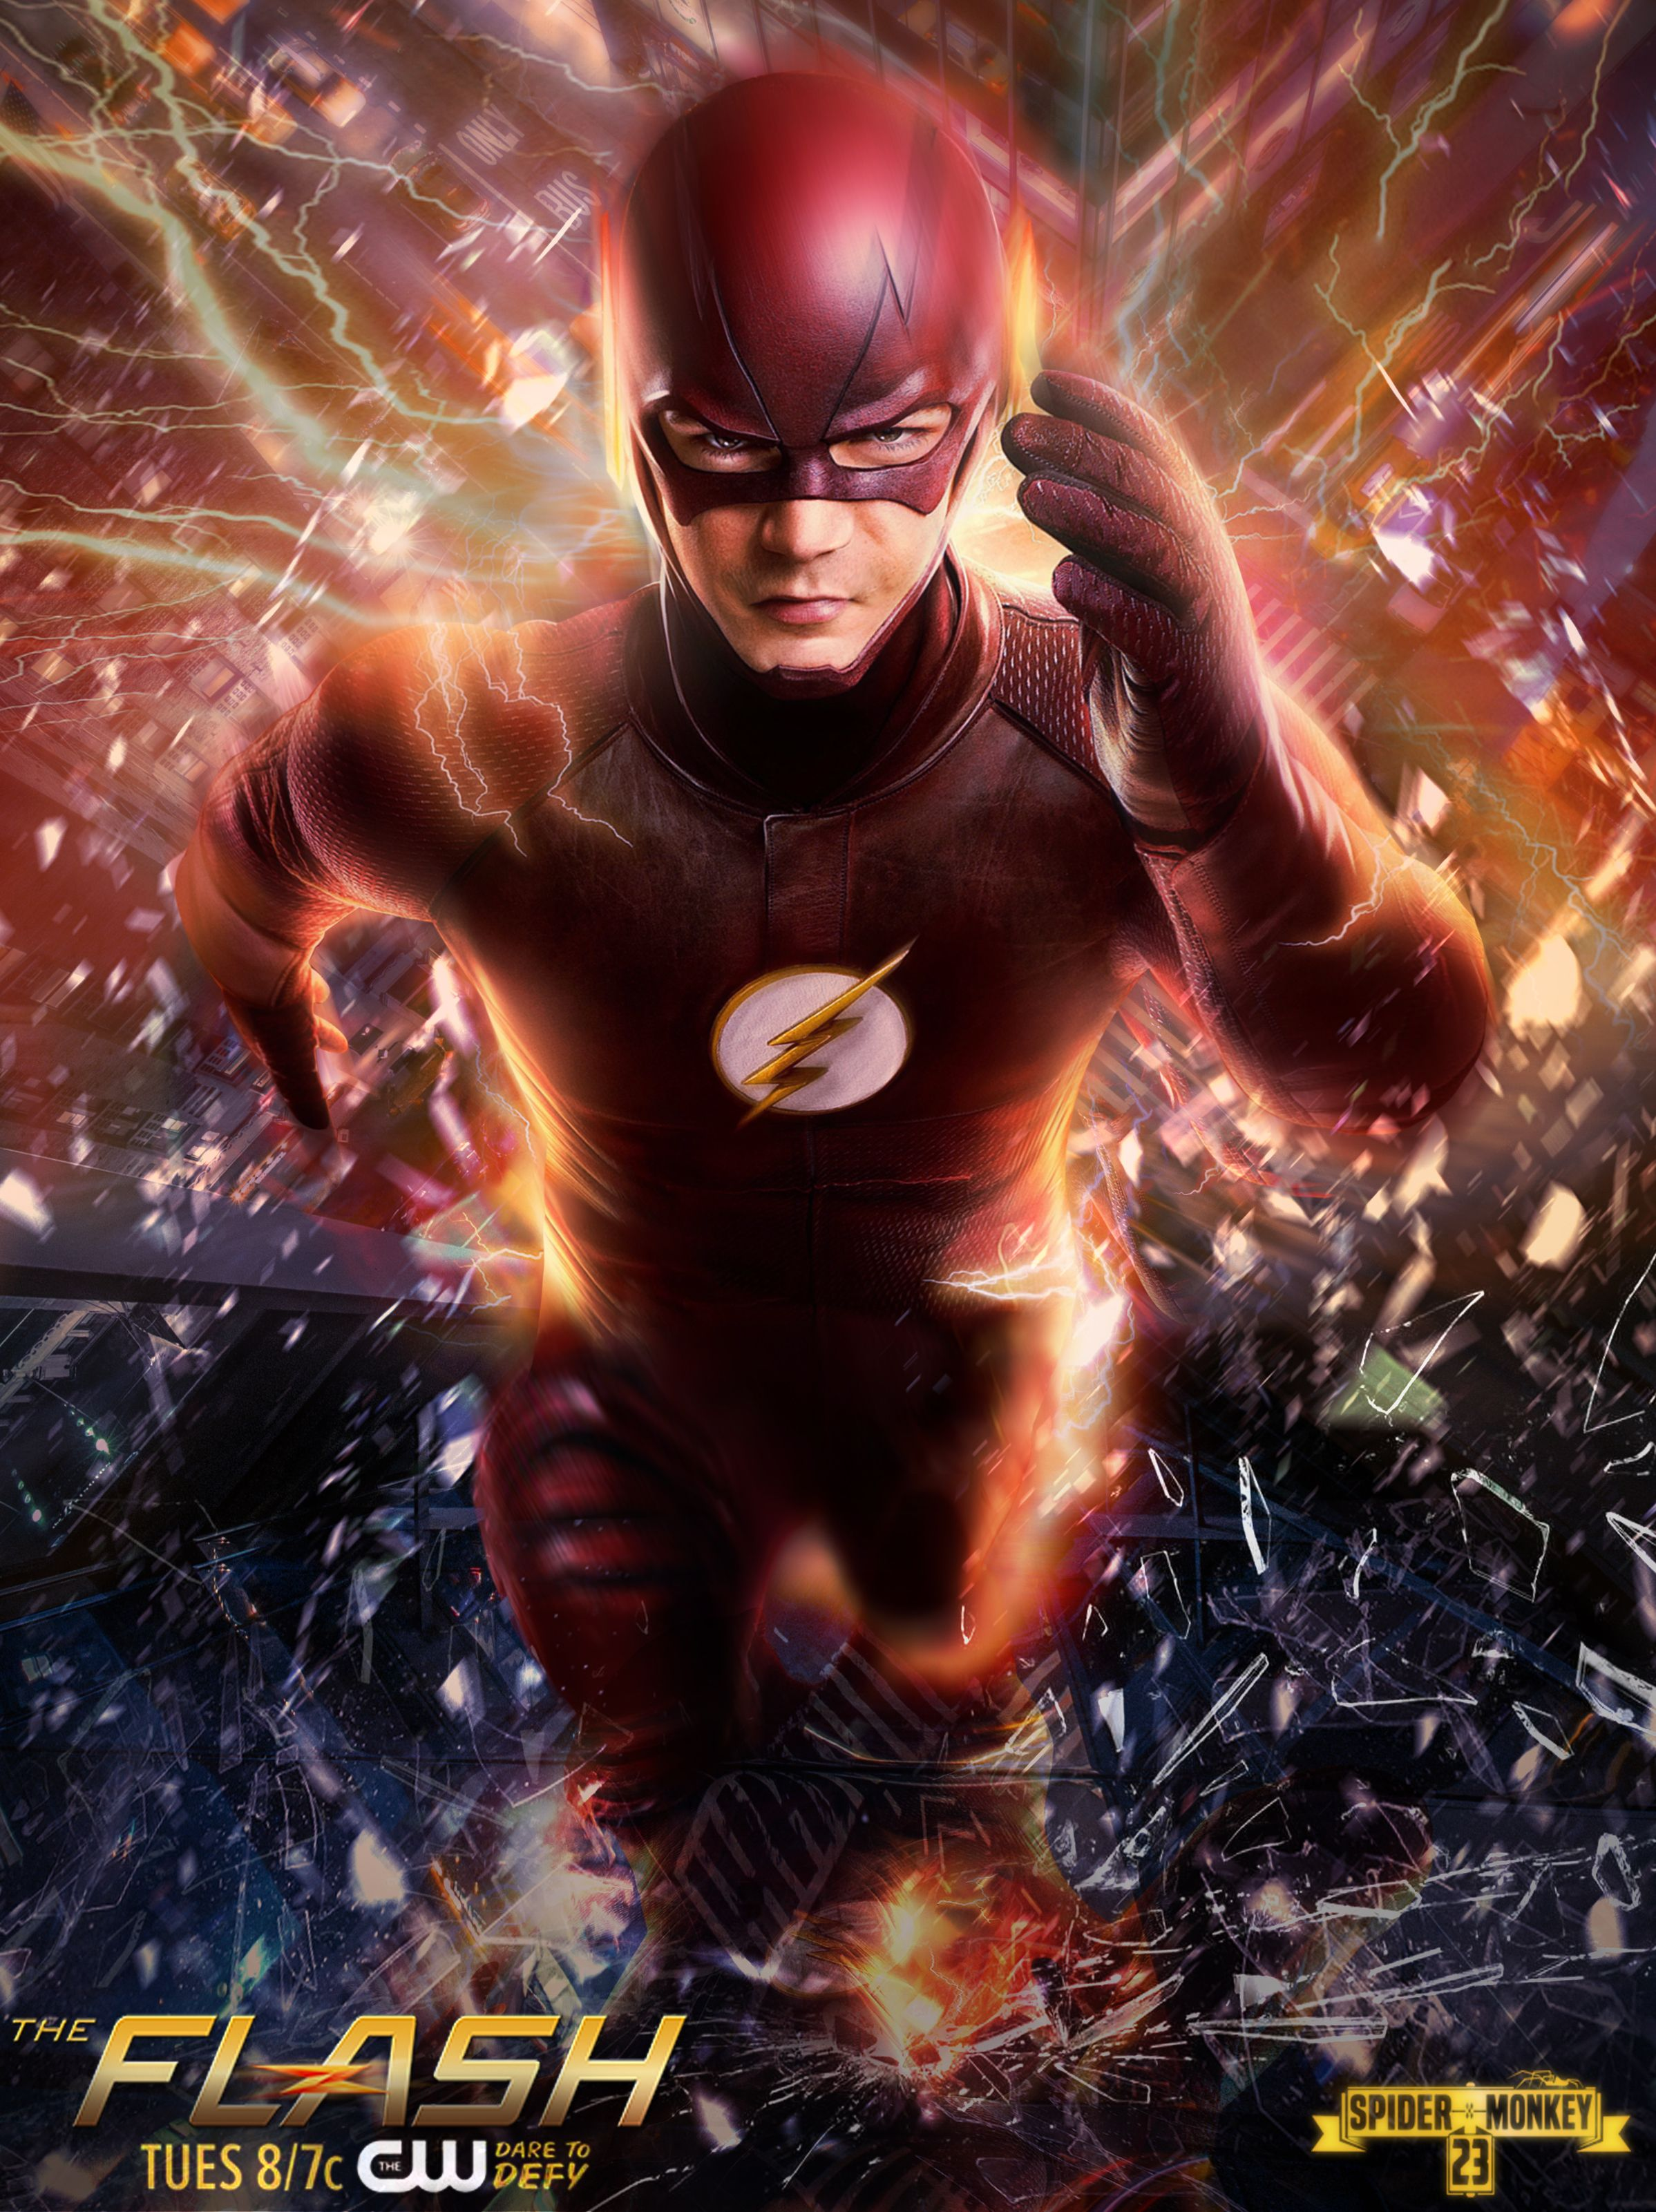 The Flash Sezon 3 ep 01-08